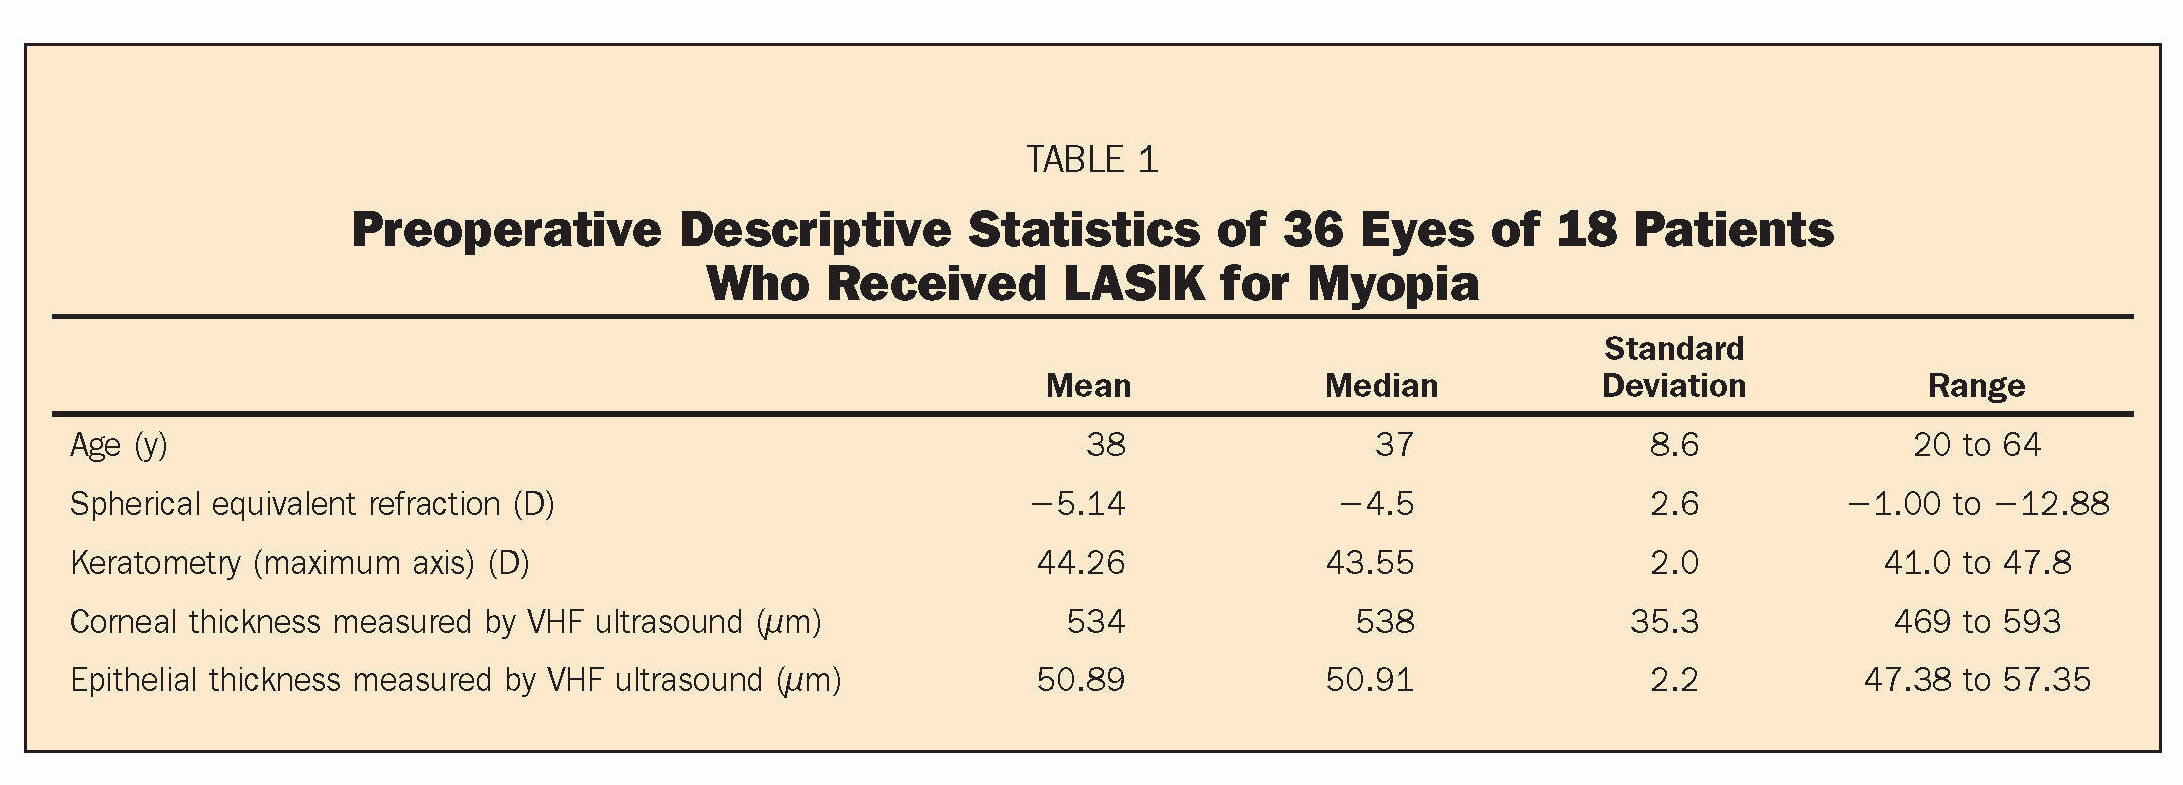 TABLE 1Preoperative Descriptive Statistics of 36 Eyes of 18 Patients Who Received LASIK for Myopia